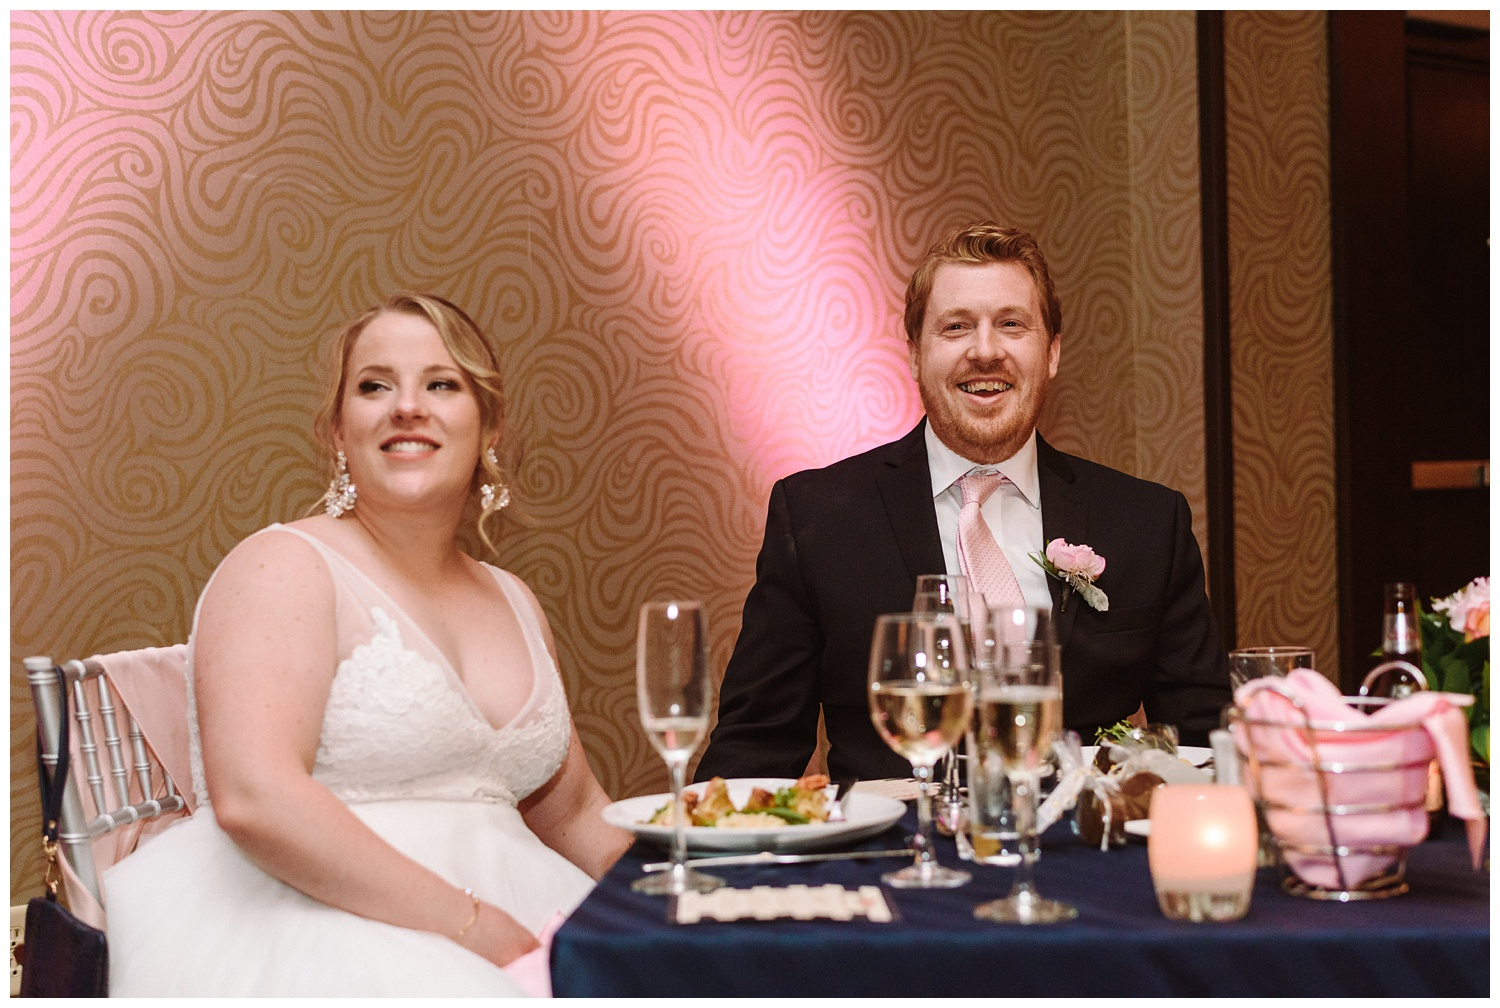 Renaissance Hotel Gillette Stadium Wedding Photographer111.jpg